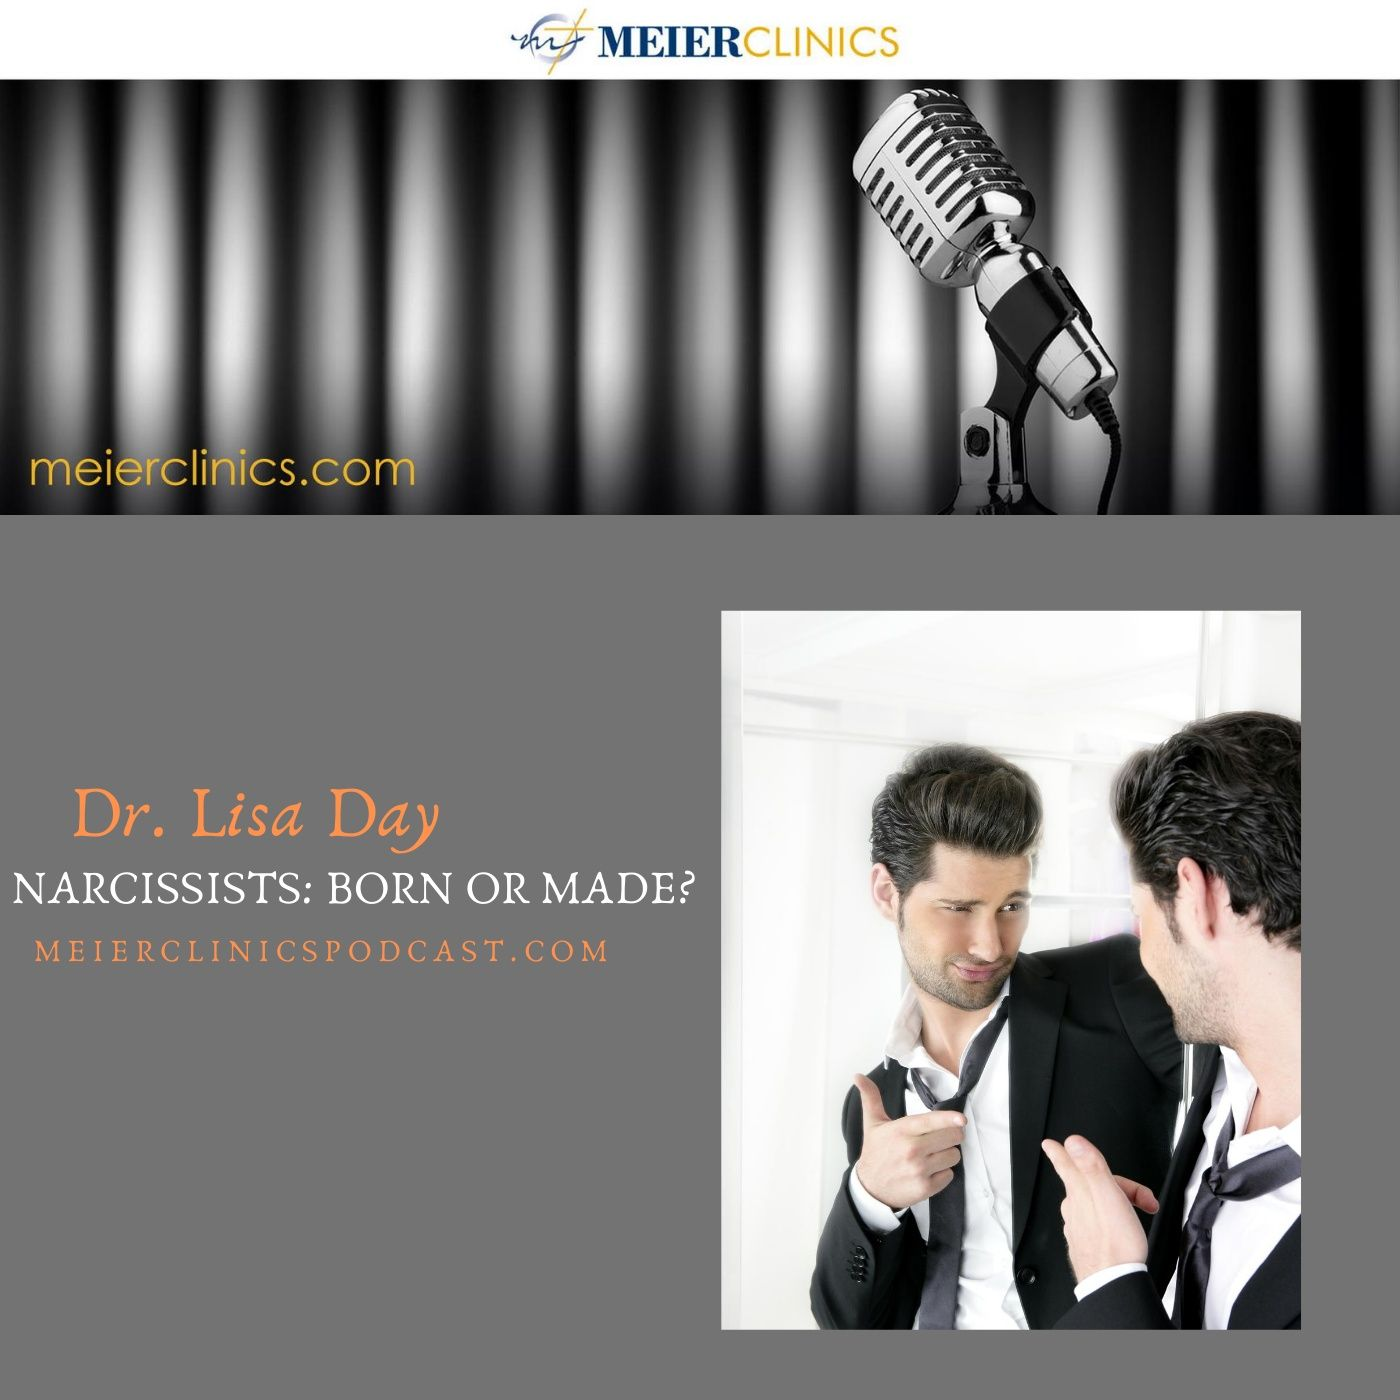 Narcissists: Born or Made?